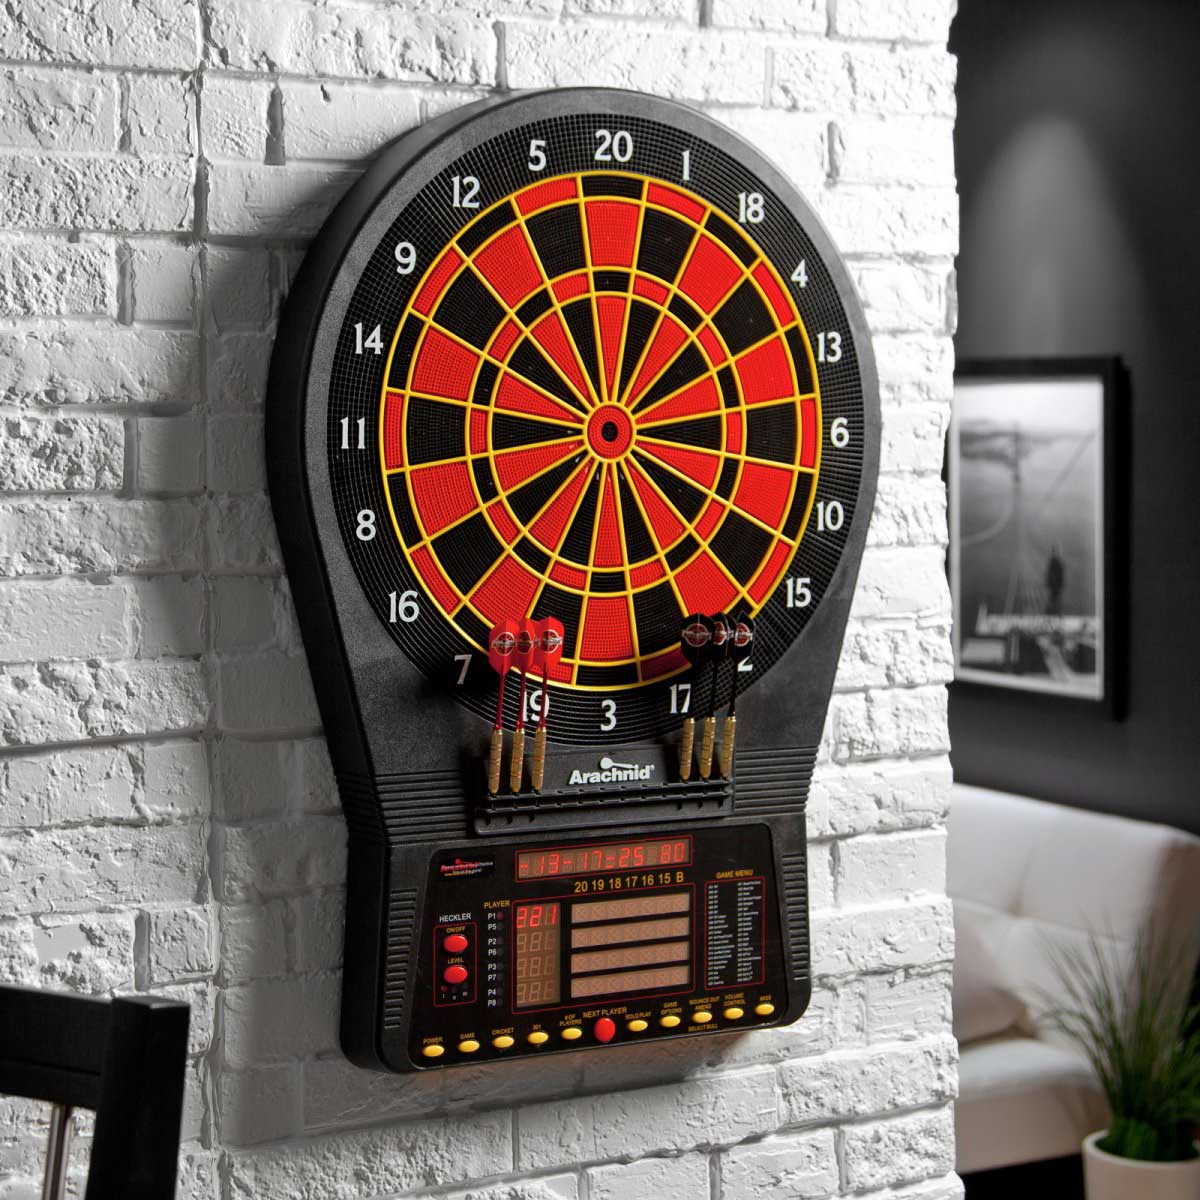 Arachnid CricketPro 800 Talking Electronic Dart Board with Heckler